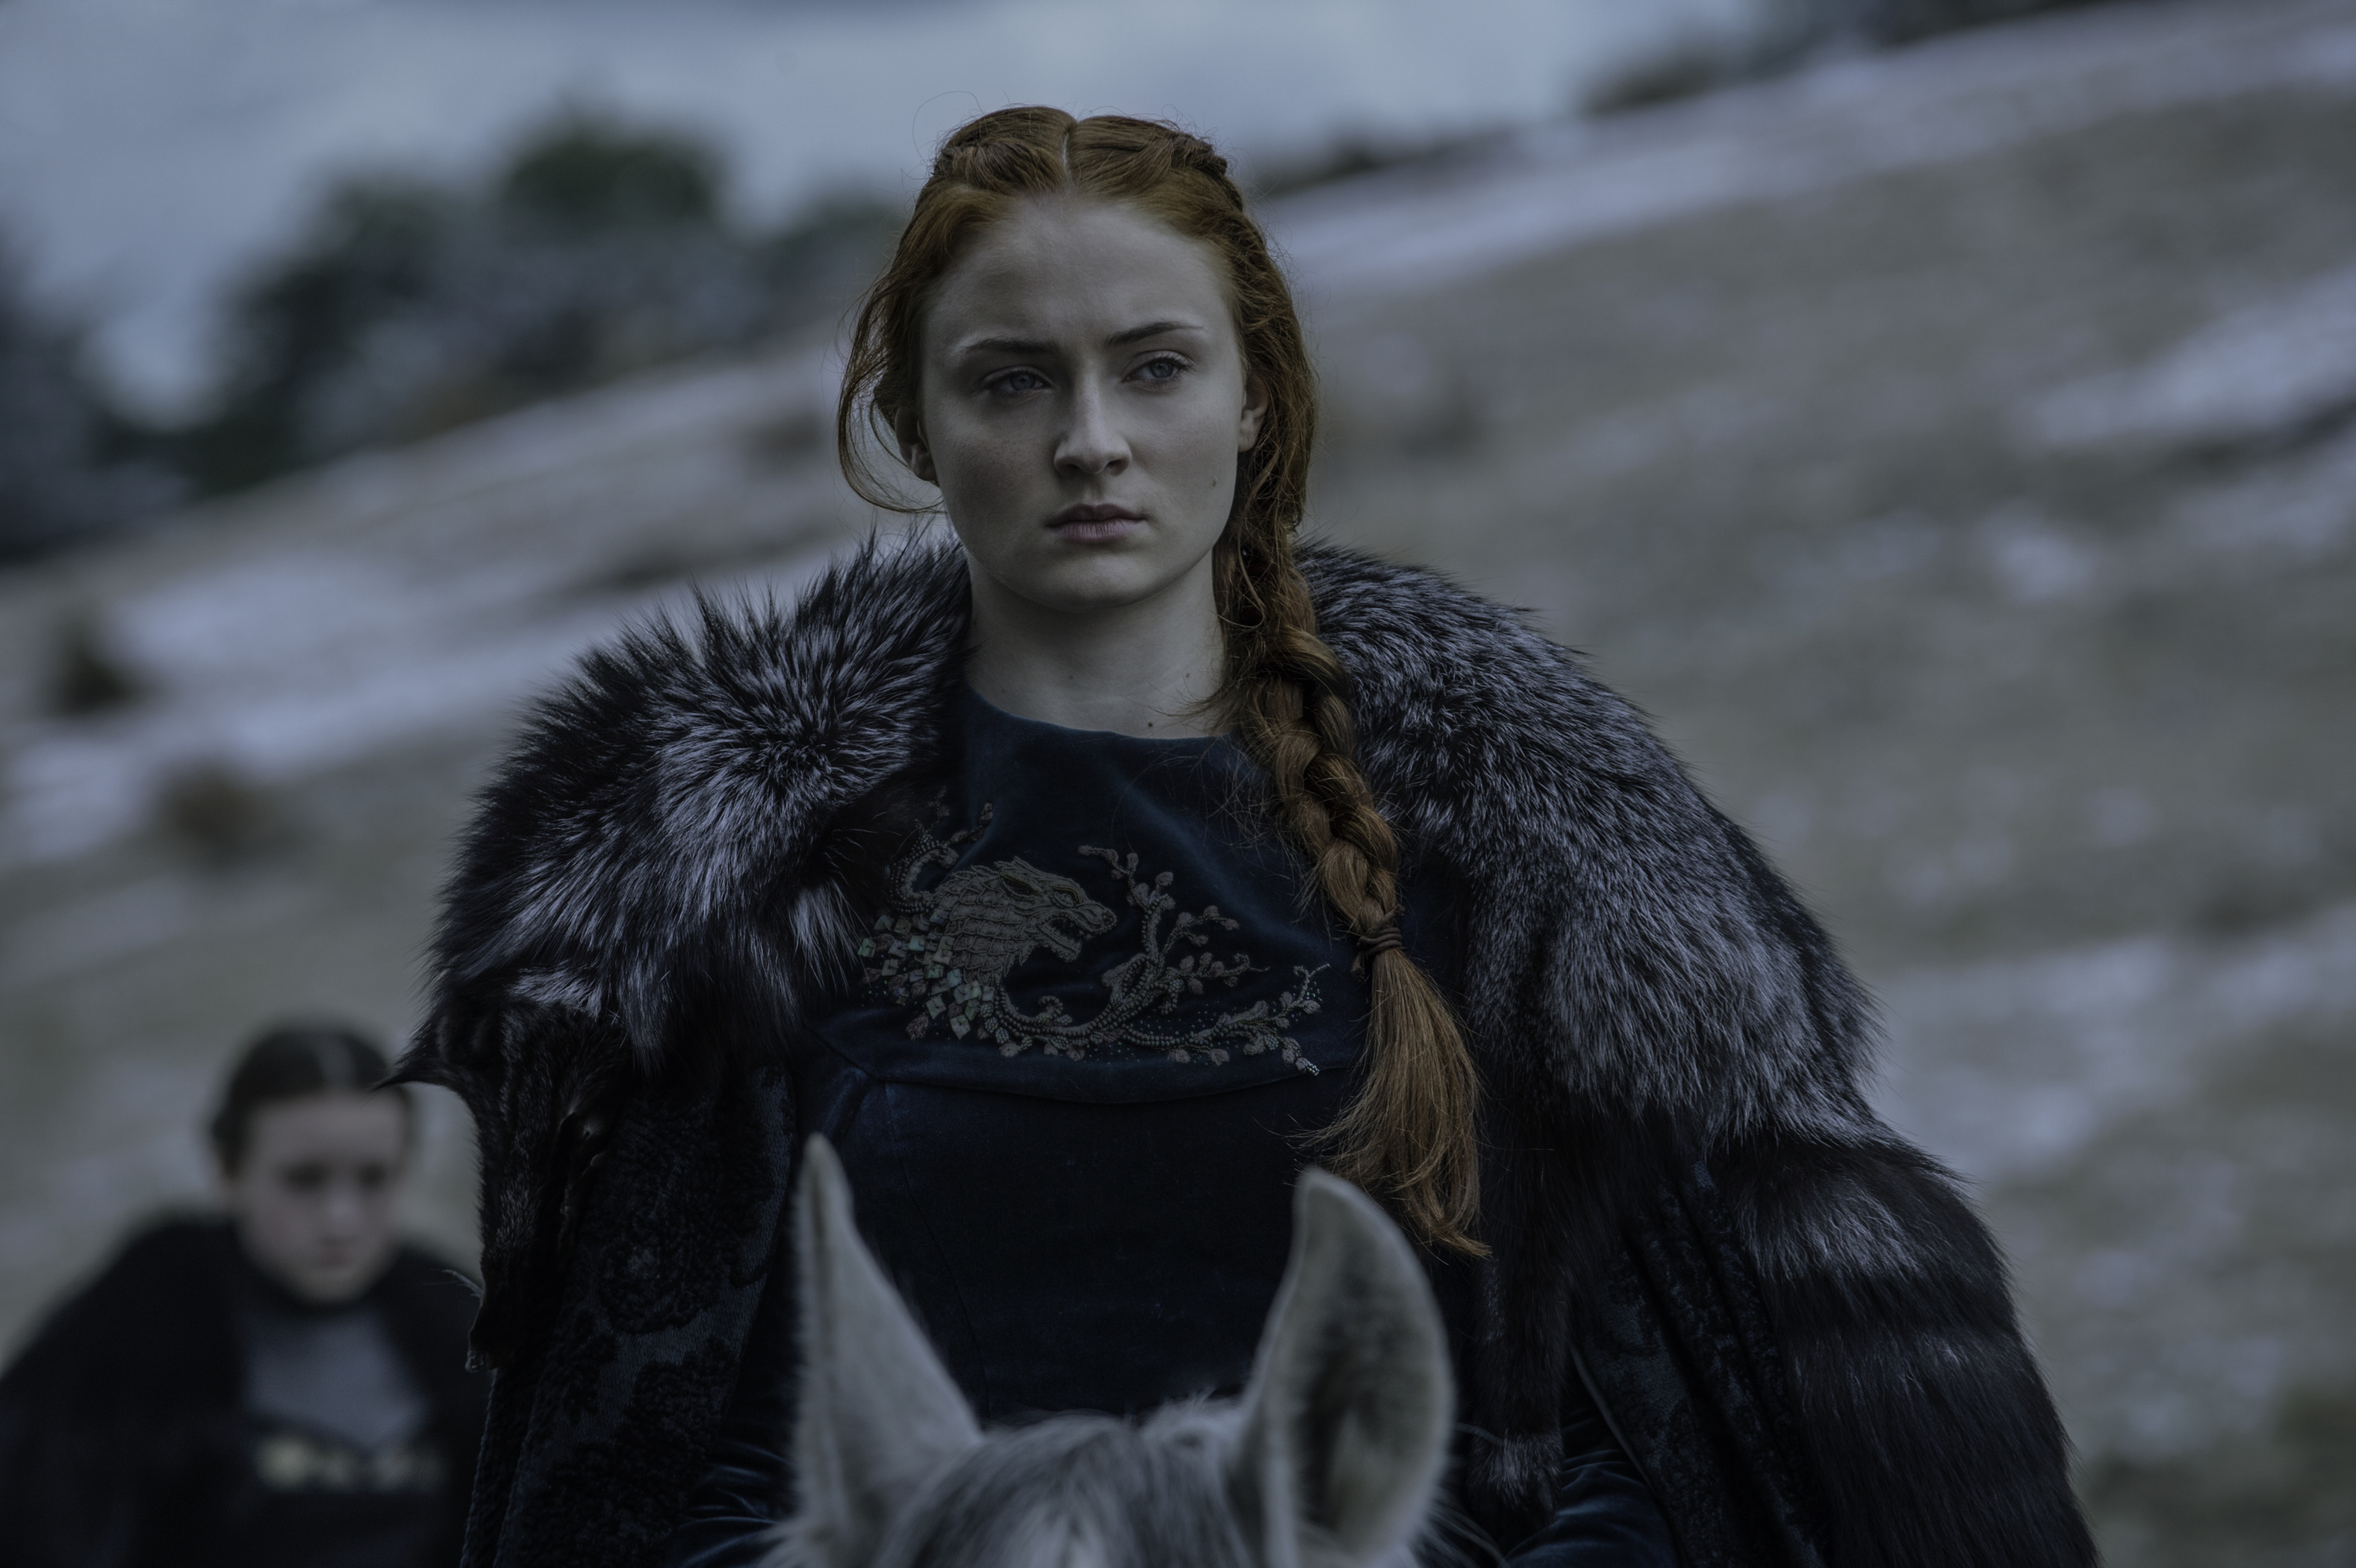 Here's who Sophie Turner wants to end up on the Iron Throne (you know, if it's not Sansa)